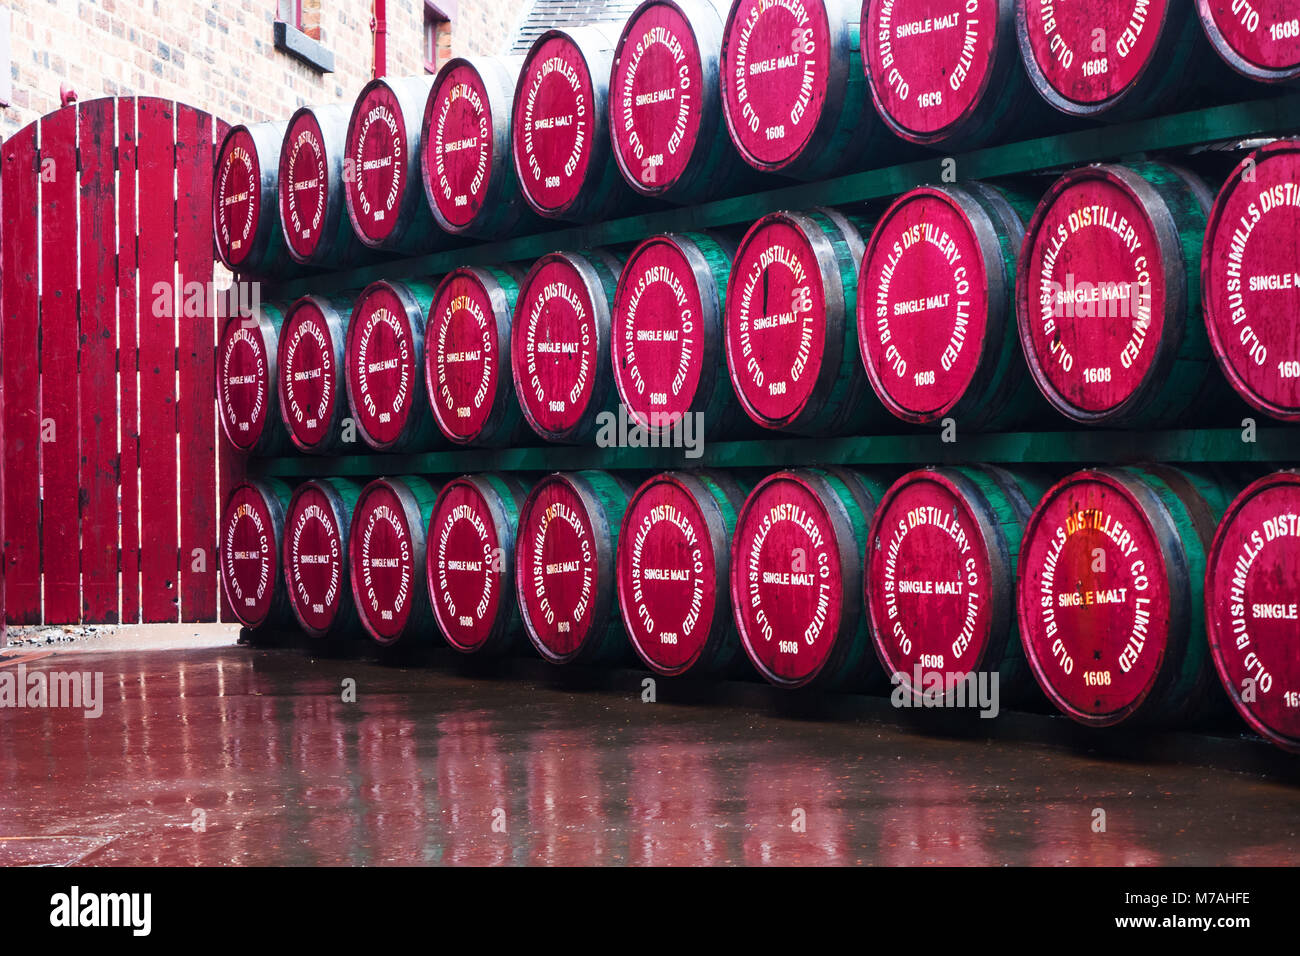 Whisky barrels on the court of the whisky distillery in Bushmills, Northern Ireland - Stock Image